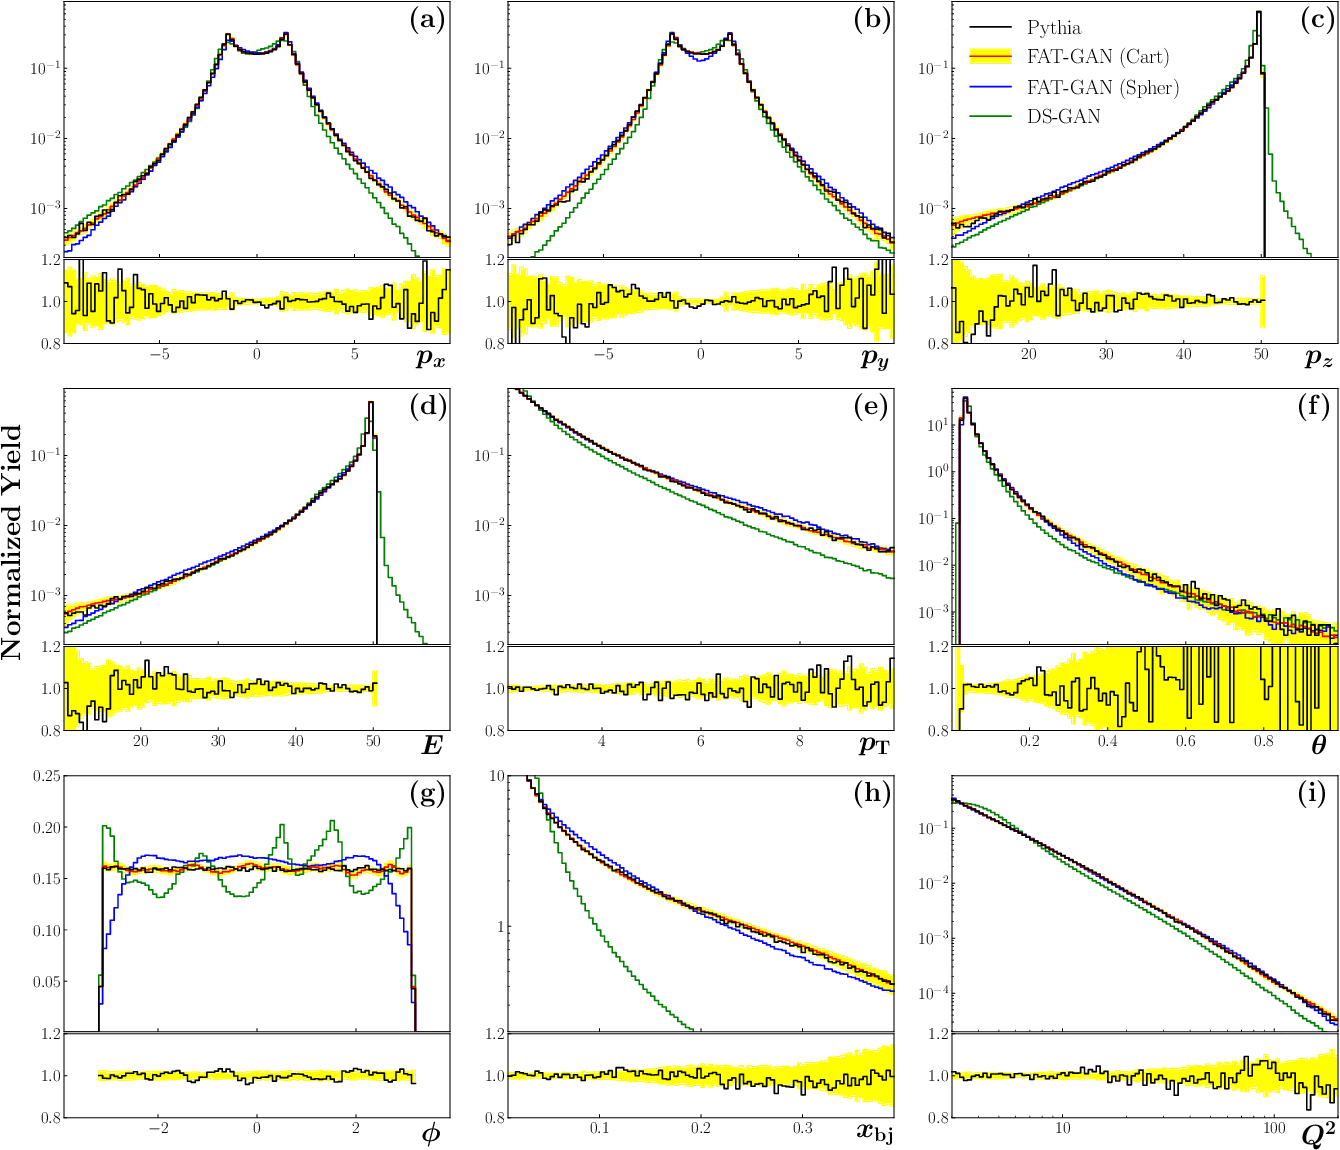 Figure 2 for Simulation of electron-proton scattering events by a Feature-Augmented and Transformed Generative Adversarial Network (FAT-GAN)